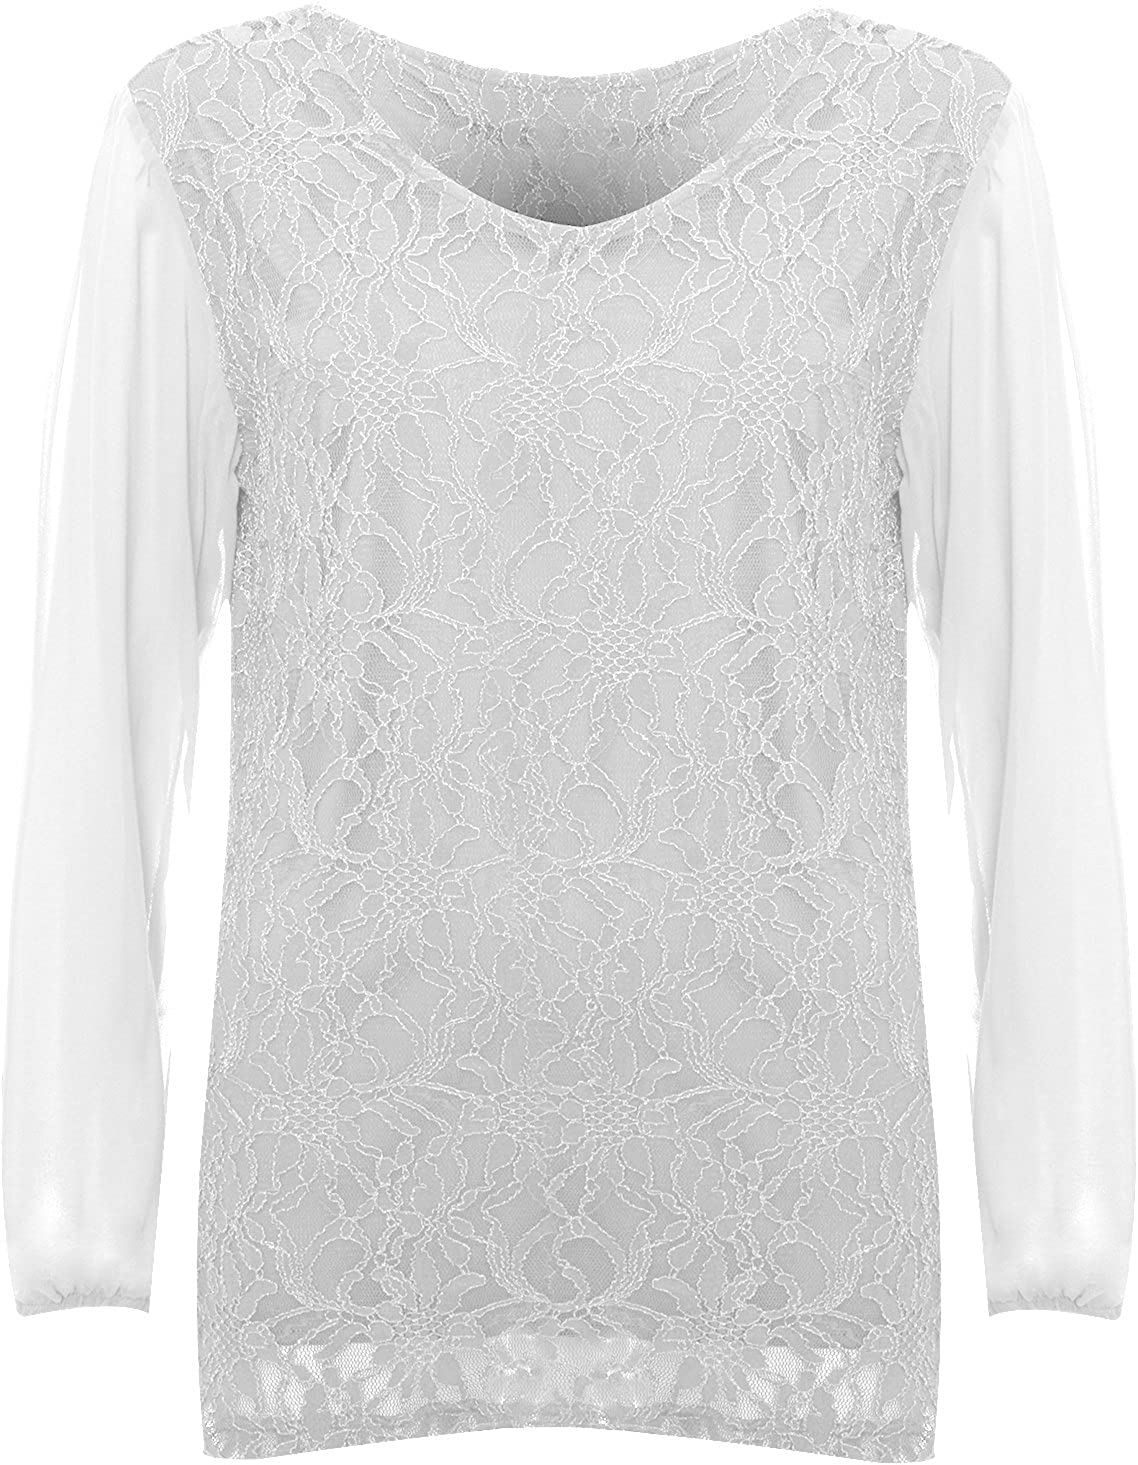 WearAll Womens Plus Size Lace Lined Sheer Long Sleeve Ladies Chiffon Tunic Party Top Sizes 14-28